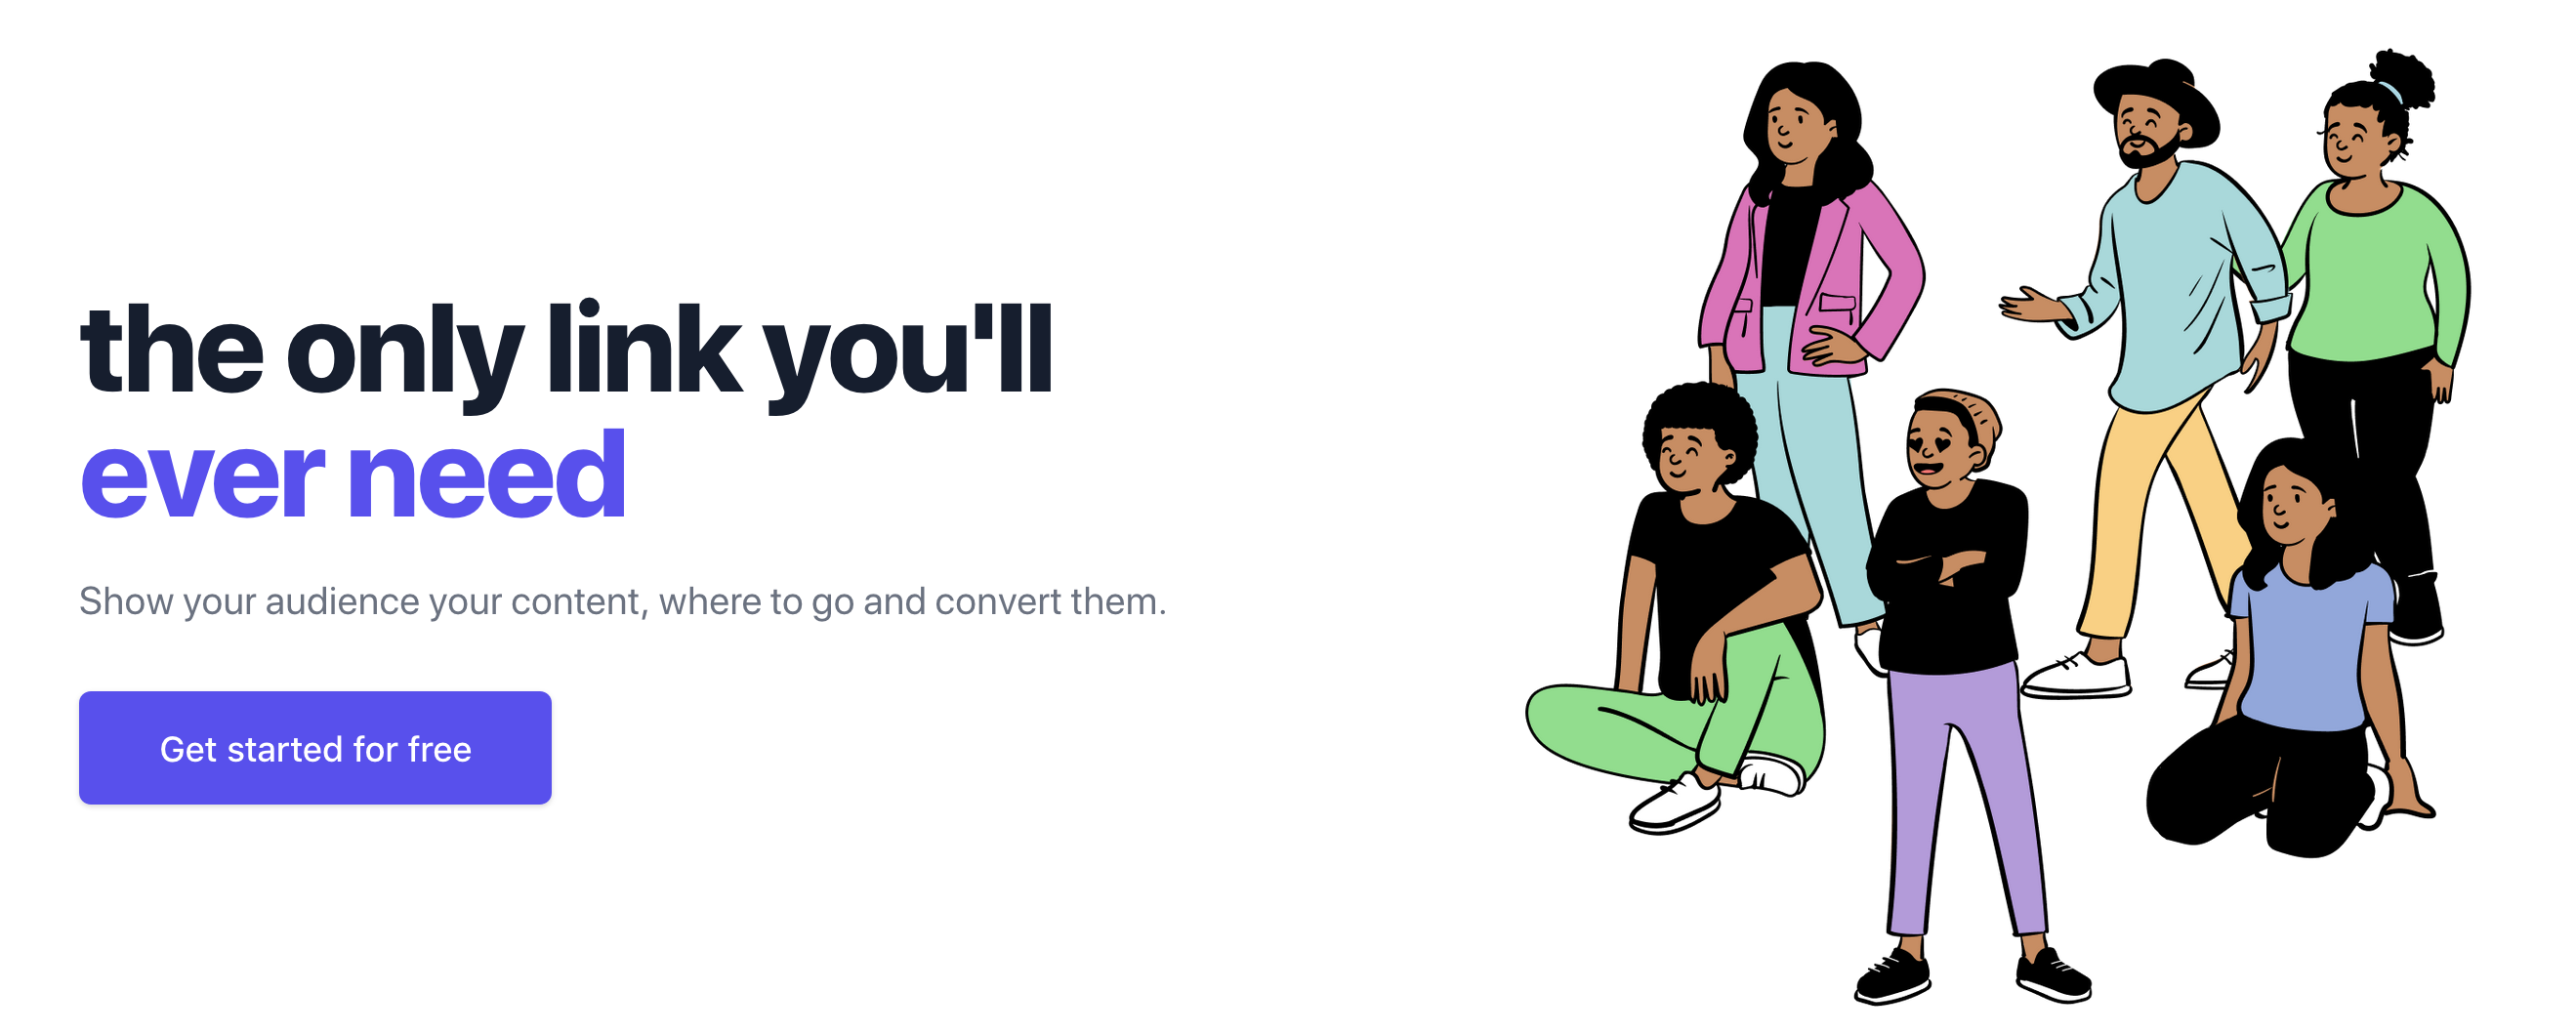 Dimelo.at is the only link you'll ever need. Show your audience your content, where to go and convert them.